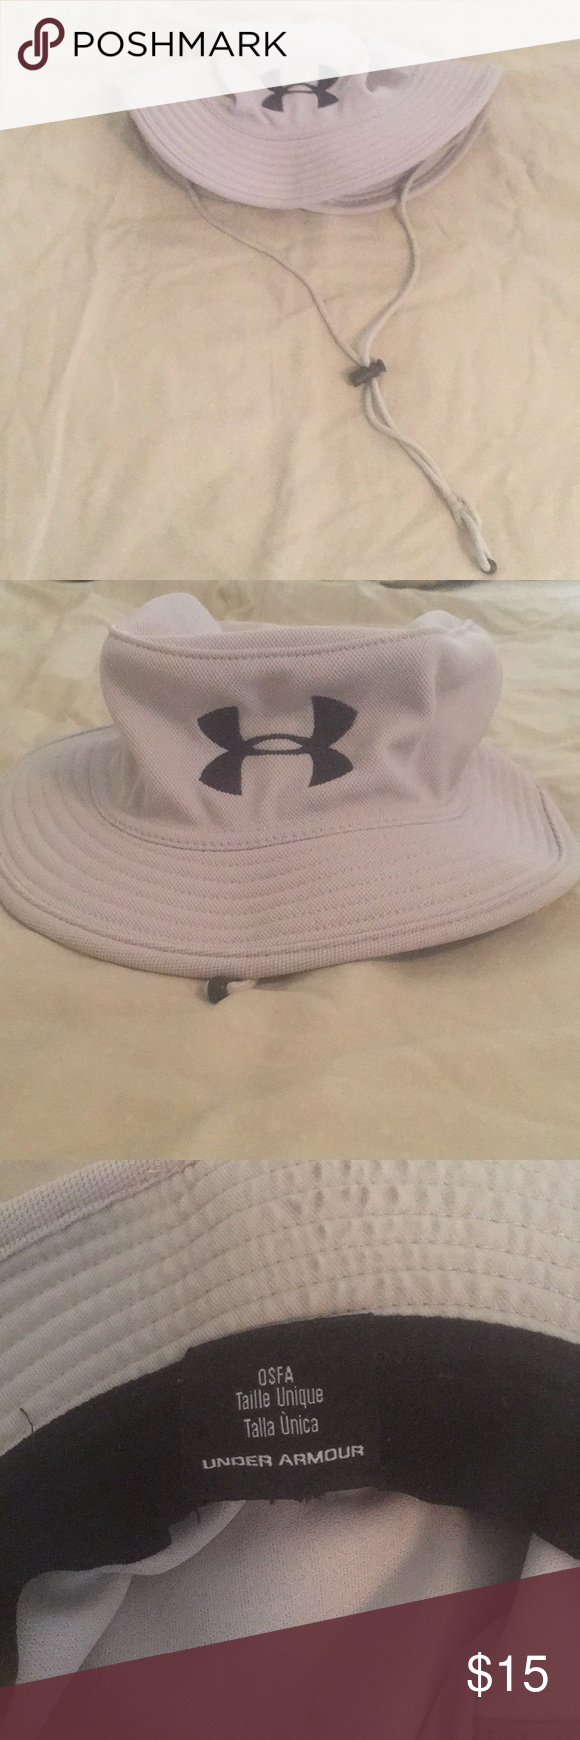 Under Armor Bucket Hat Tan Cream color. Good condition Under Armour  Accessories Hats 14d2063505d